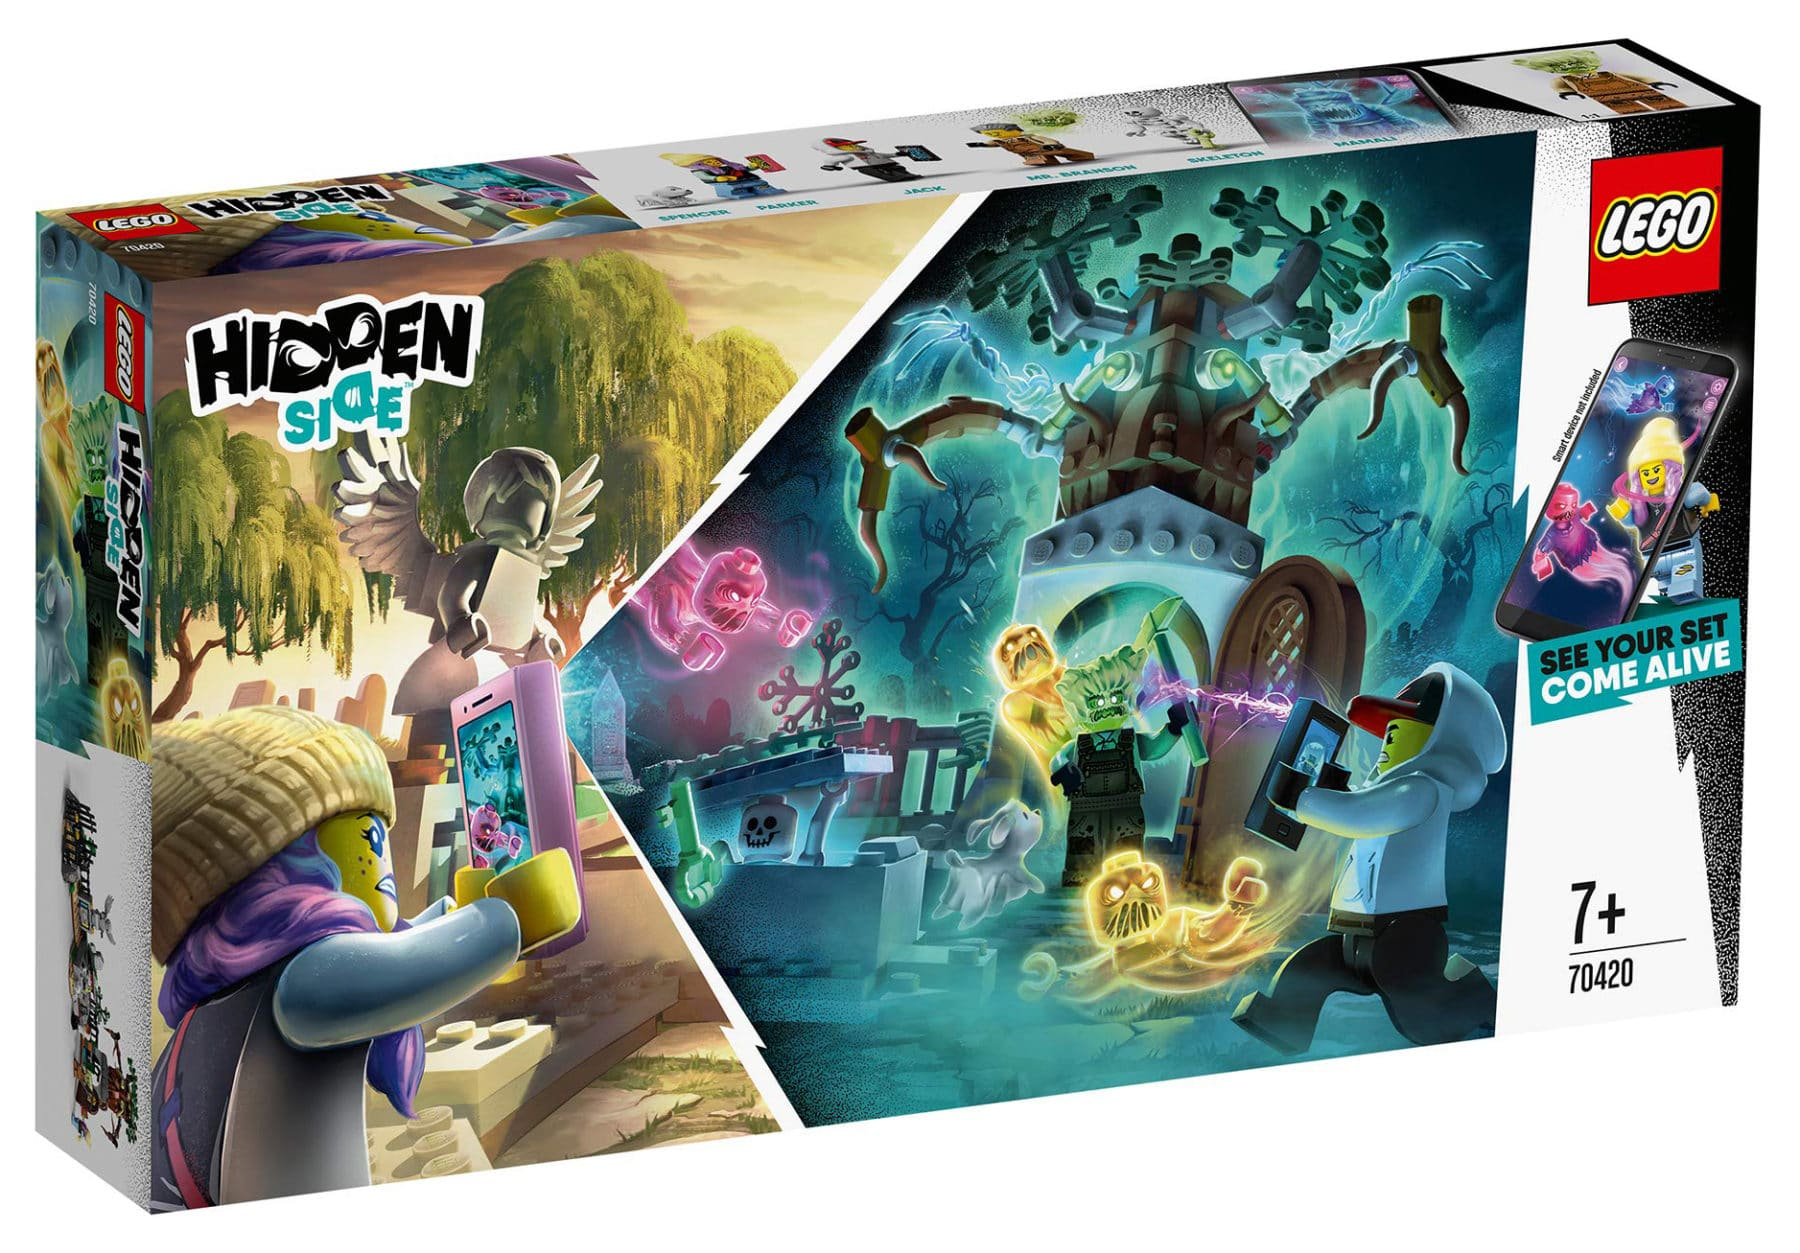 LEGO Hidden Side 70420 Friedhof Box